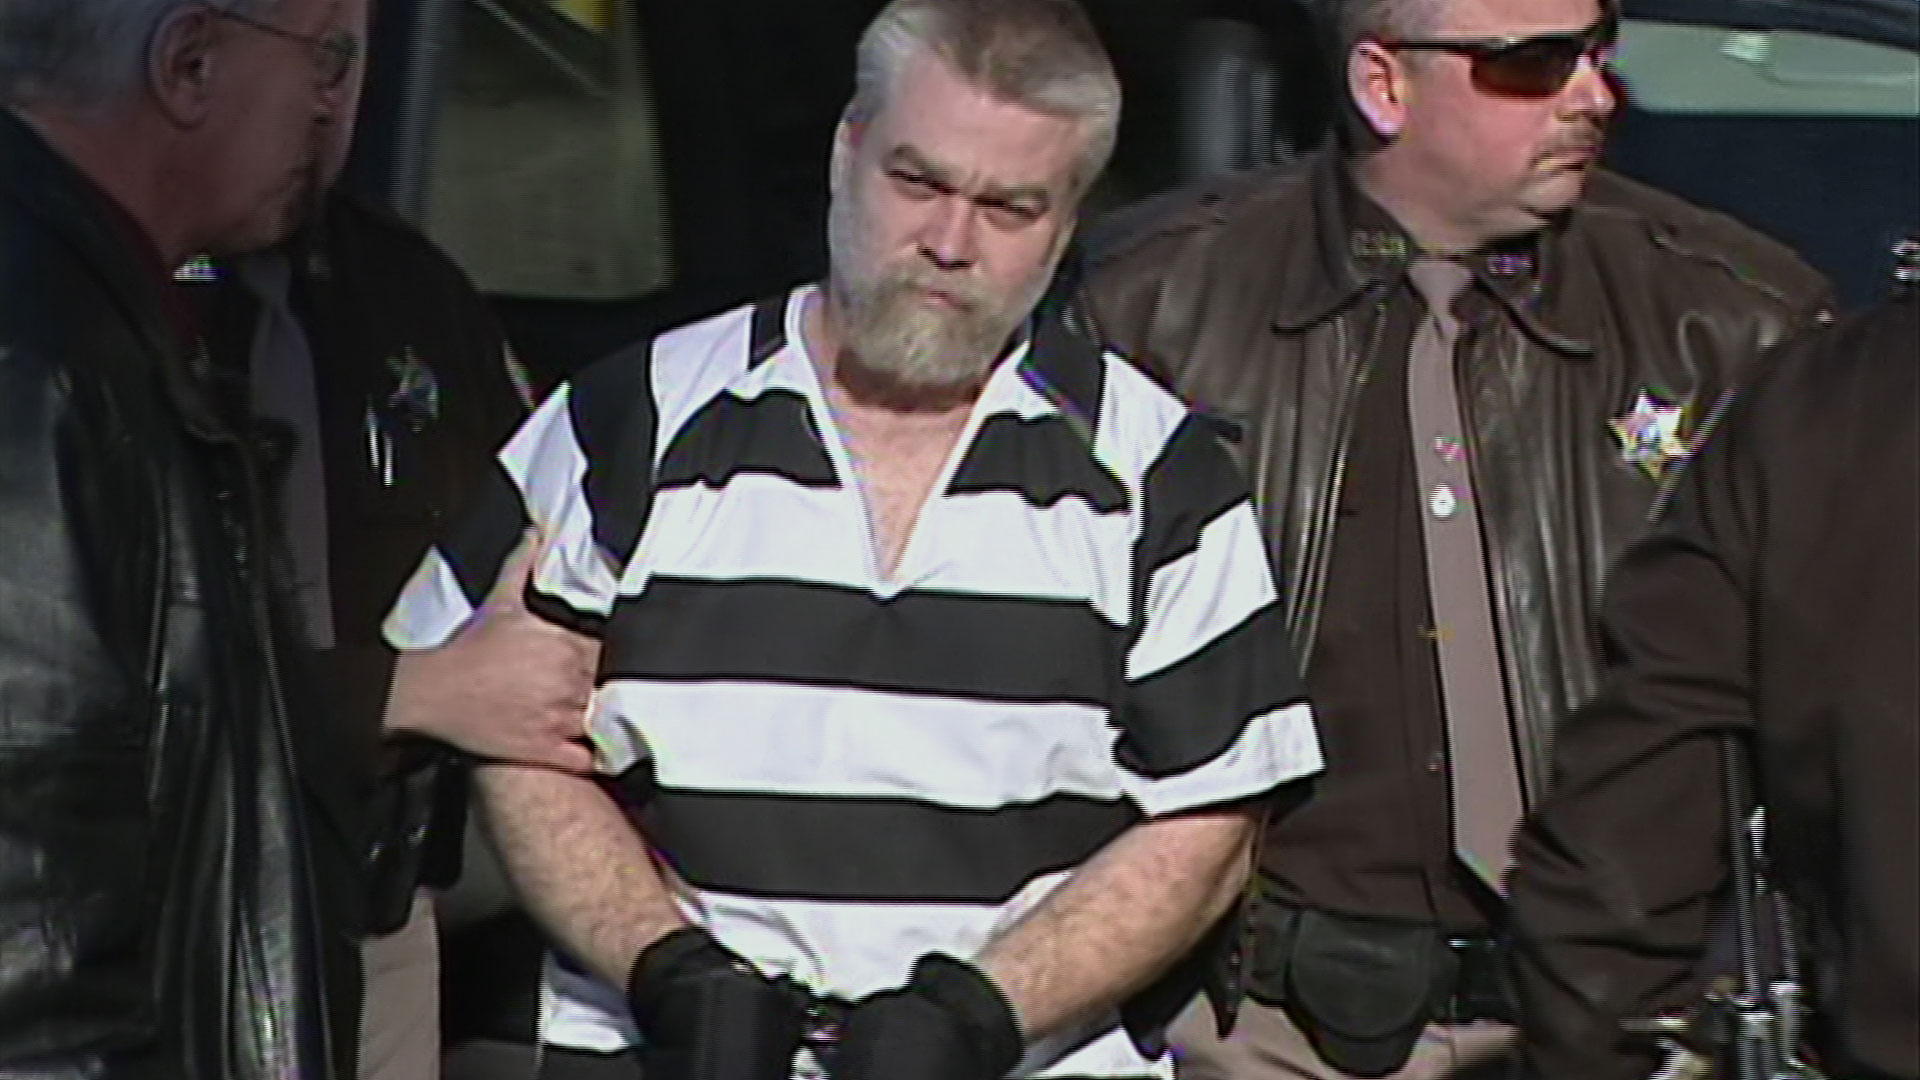 Steven Avery in the Netflix series 'Making A Murderer'